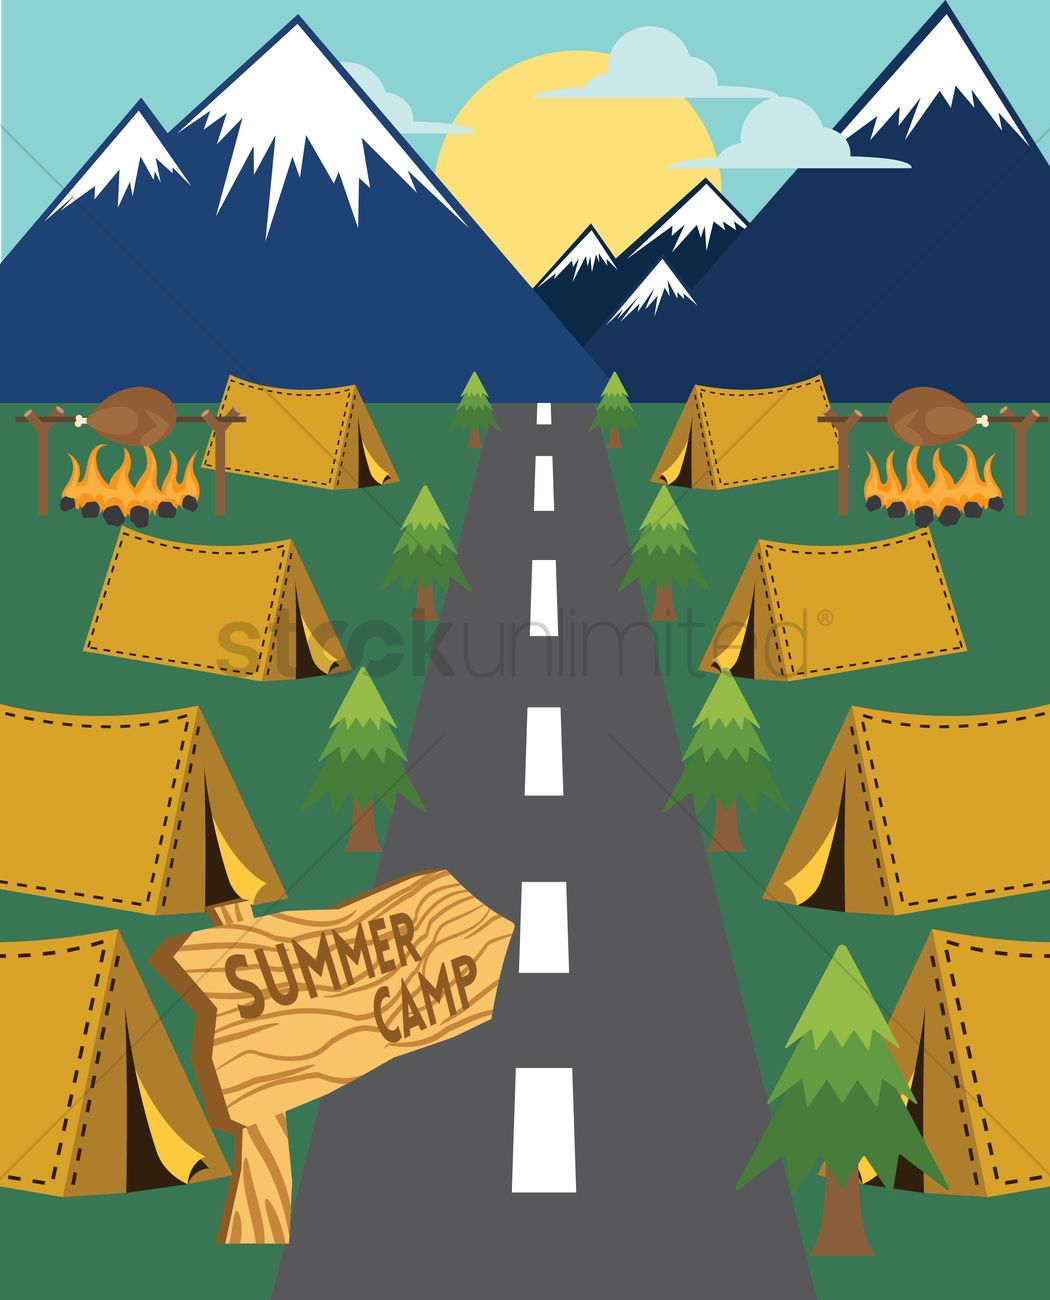 summer camp wallpaper vector image 1618420 stockunlimited